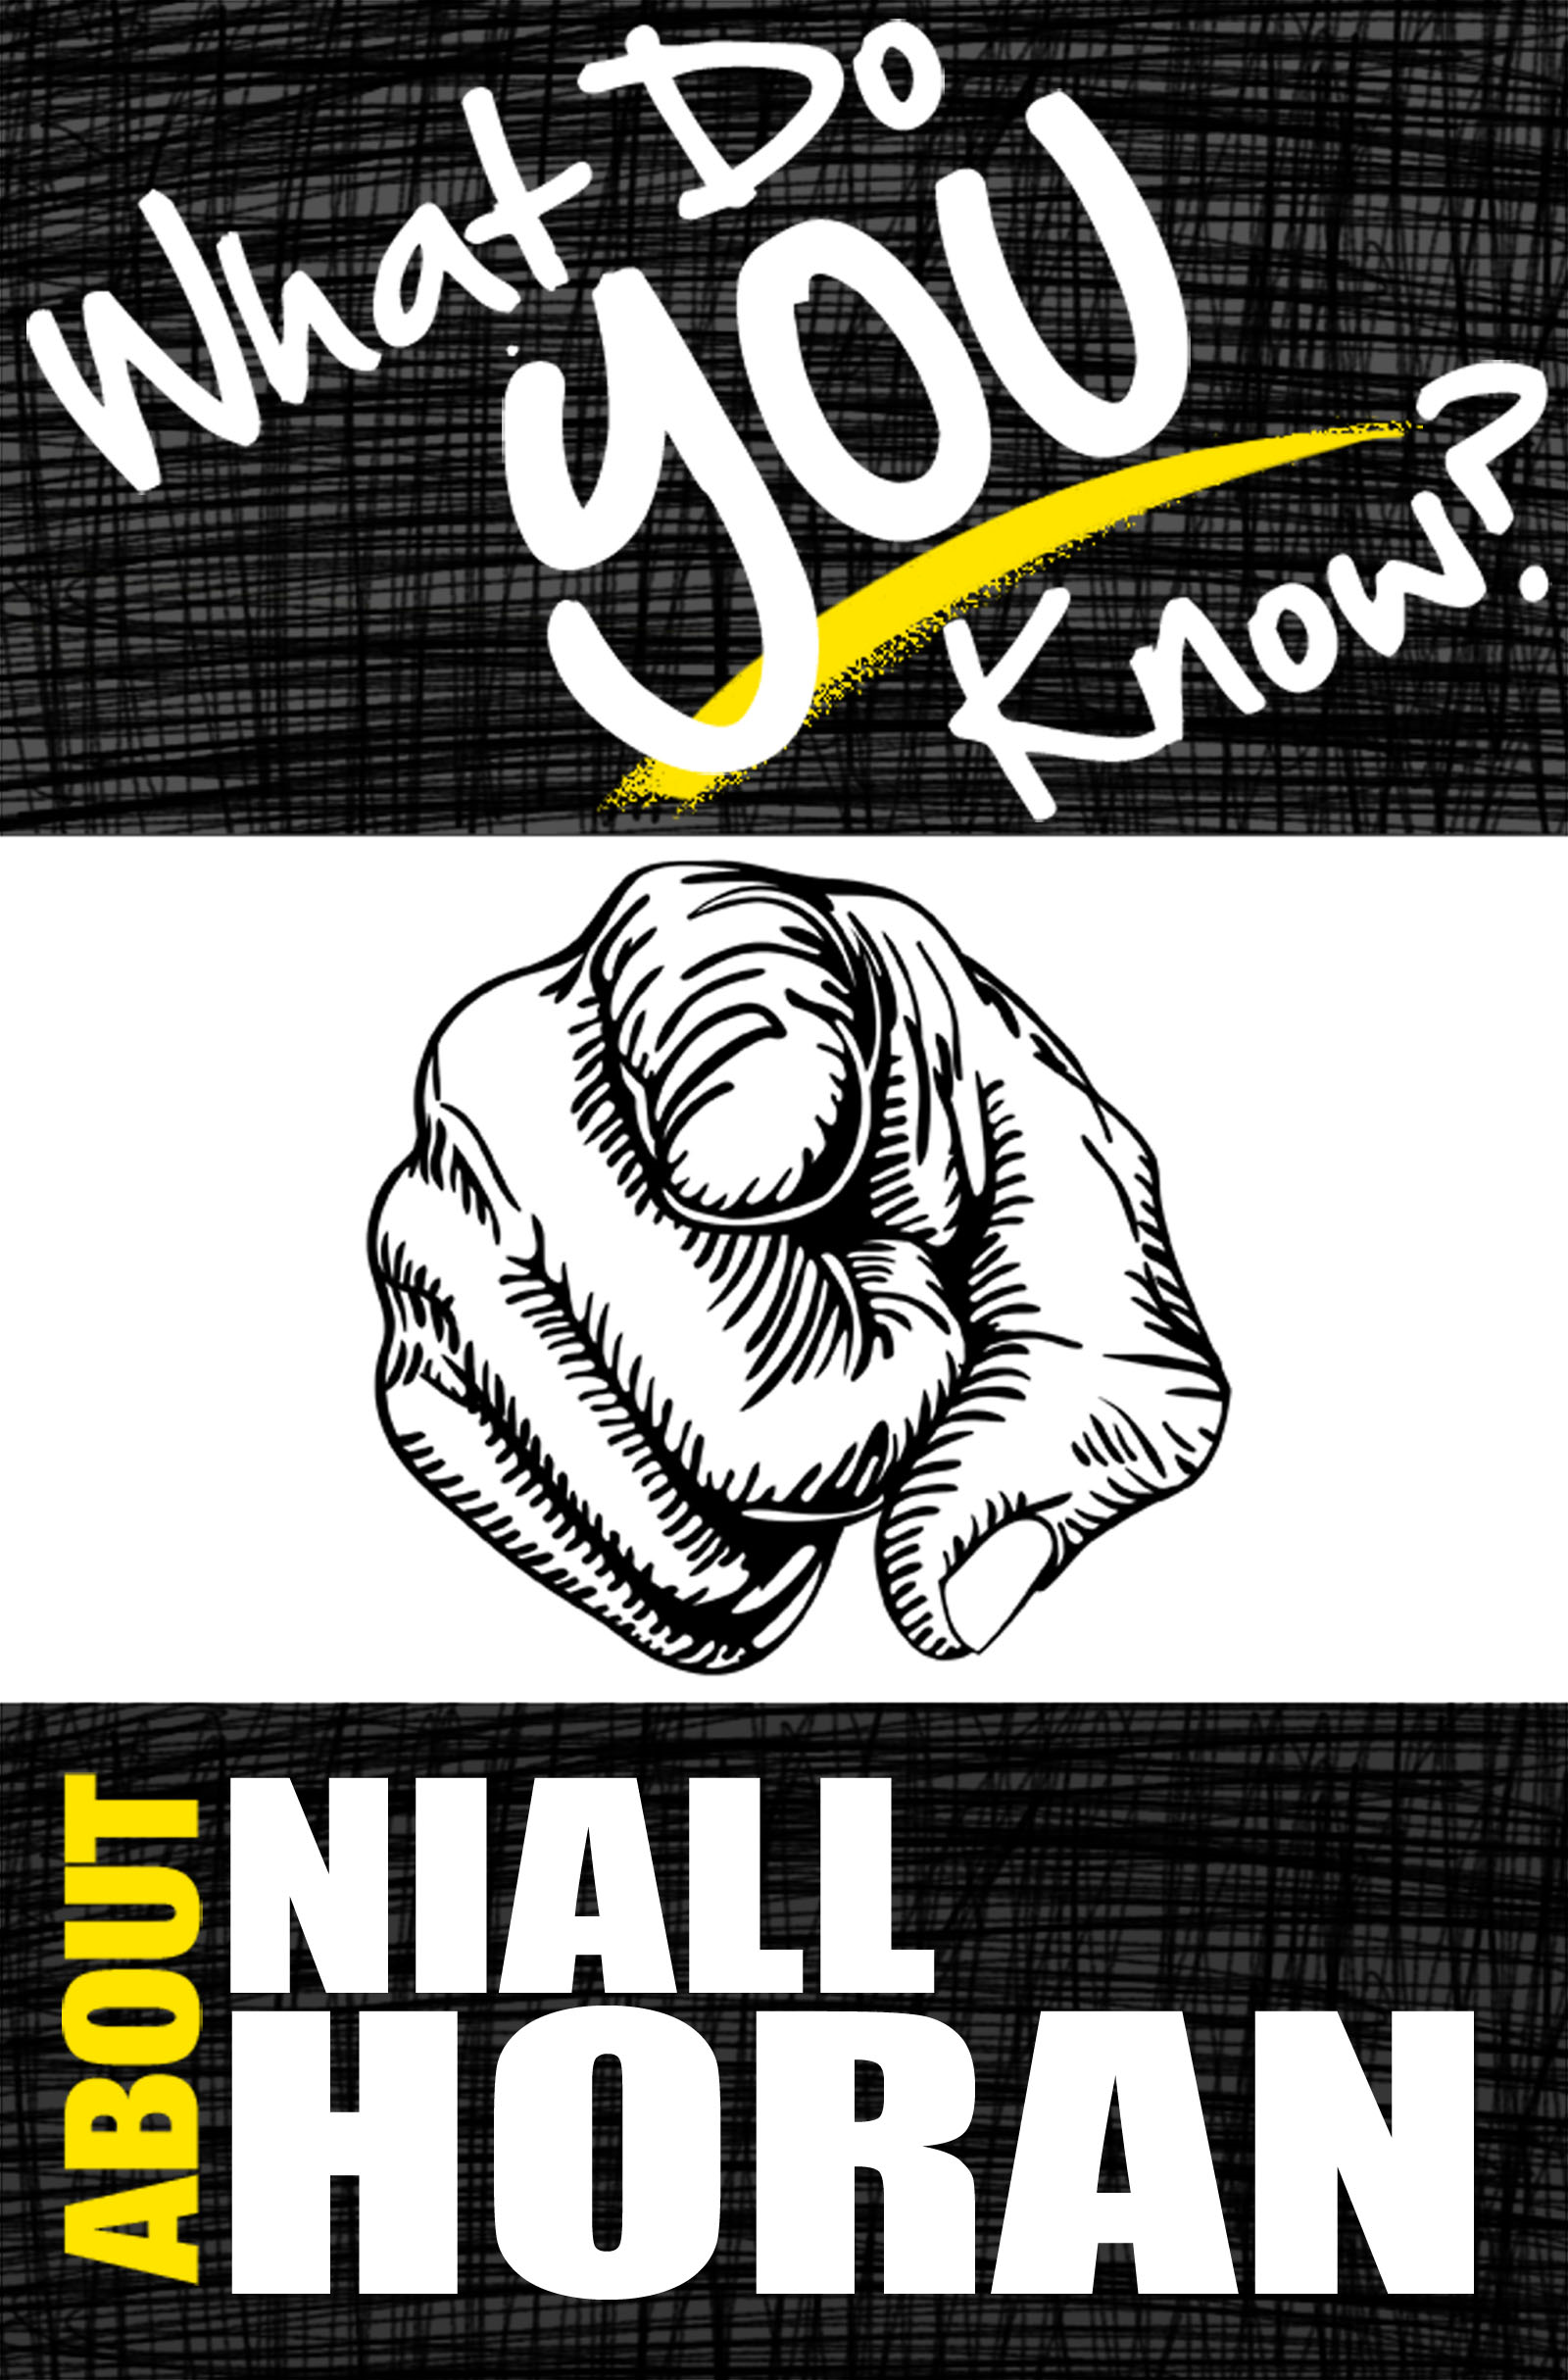 What Do You Know About Niall Horan?